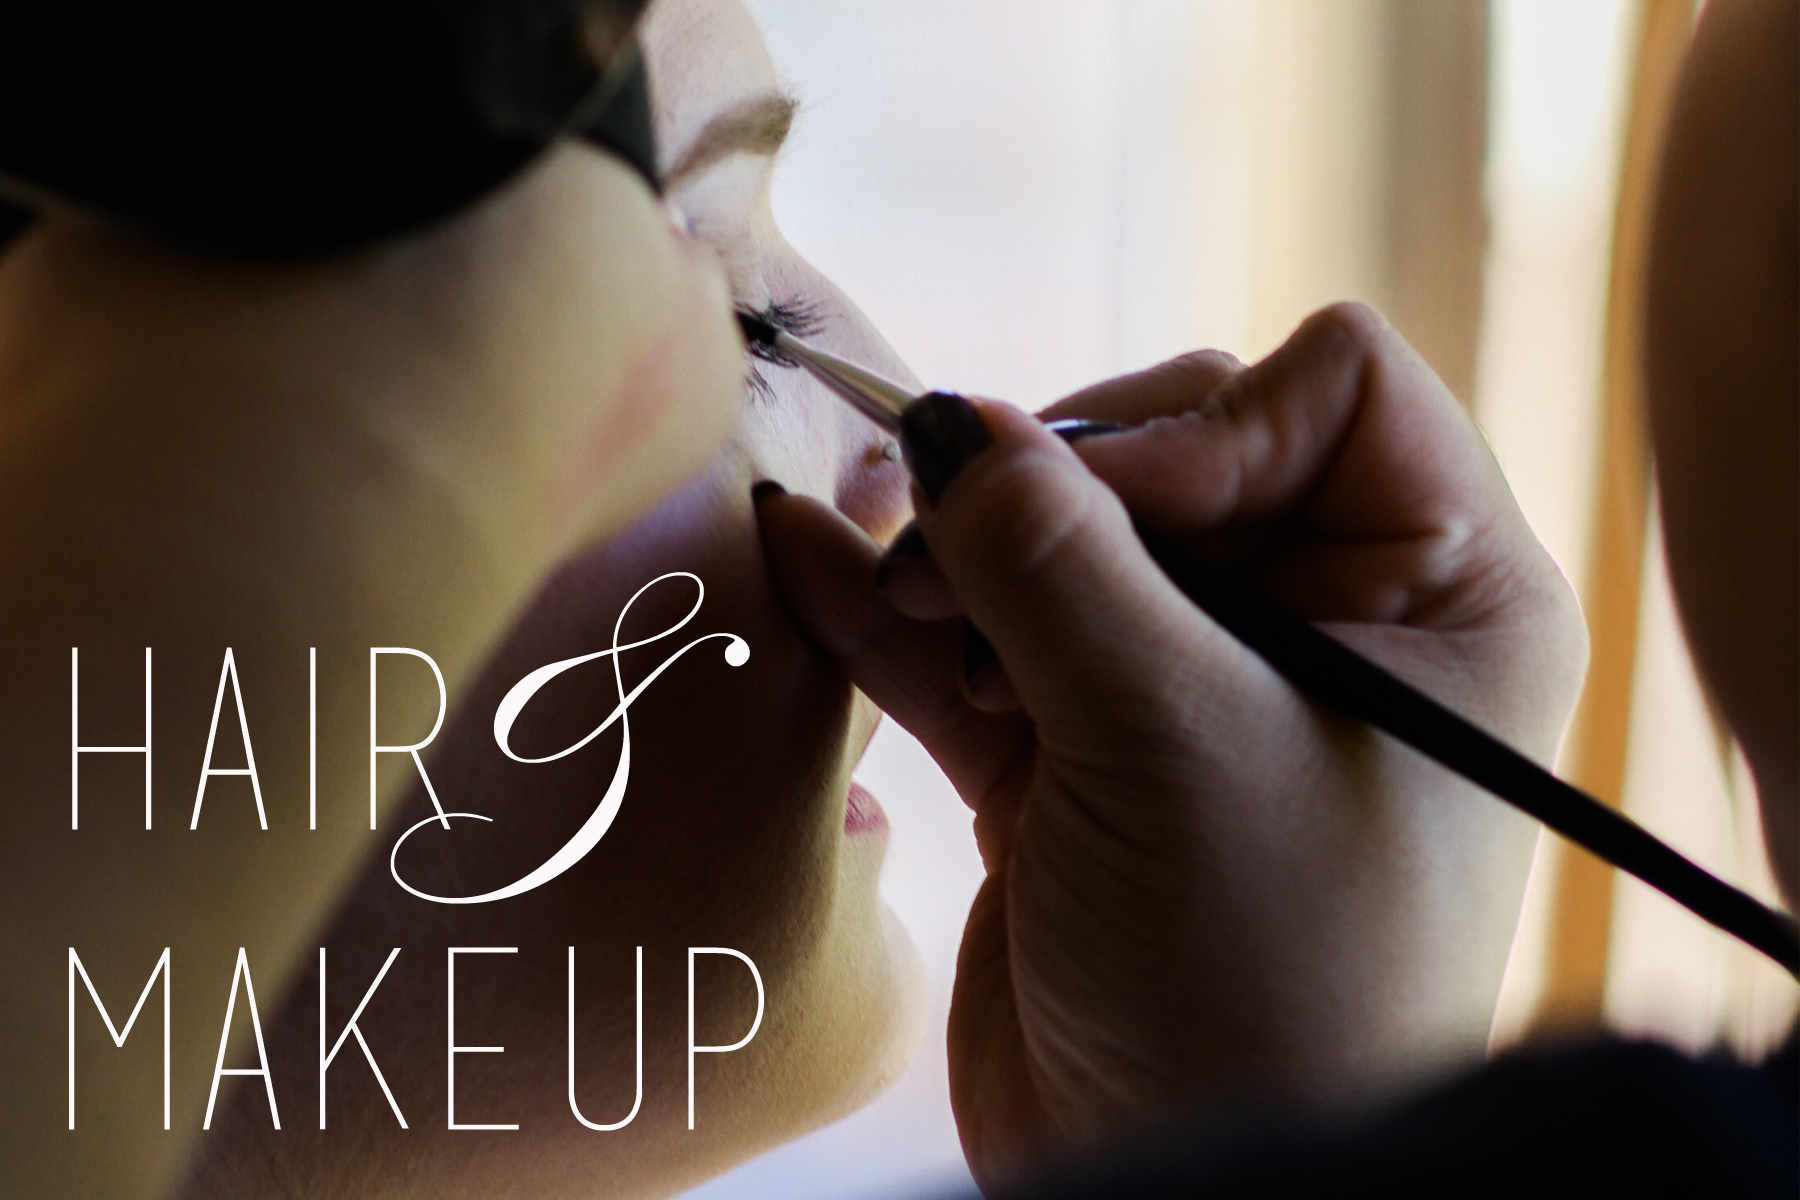 HAIR & MAKE UP - Next, one of our AMAZING hair and make-up artists (we are very selective and assure you you are in the best of hands) will talk about what look you are going for. Then you will be pampered to a total make-over.